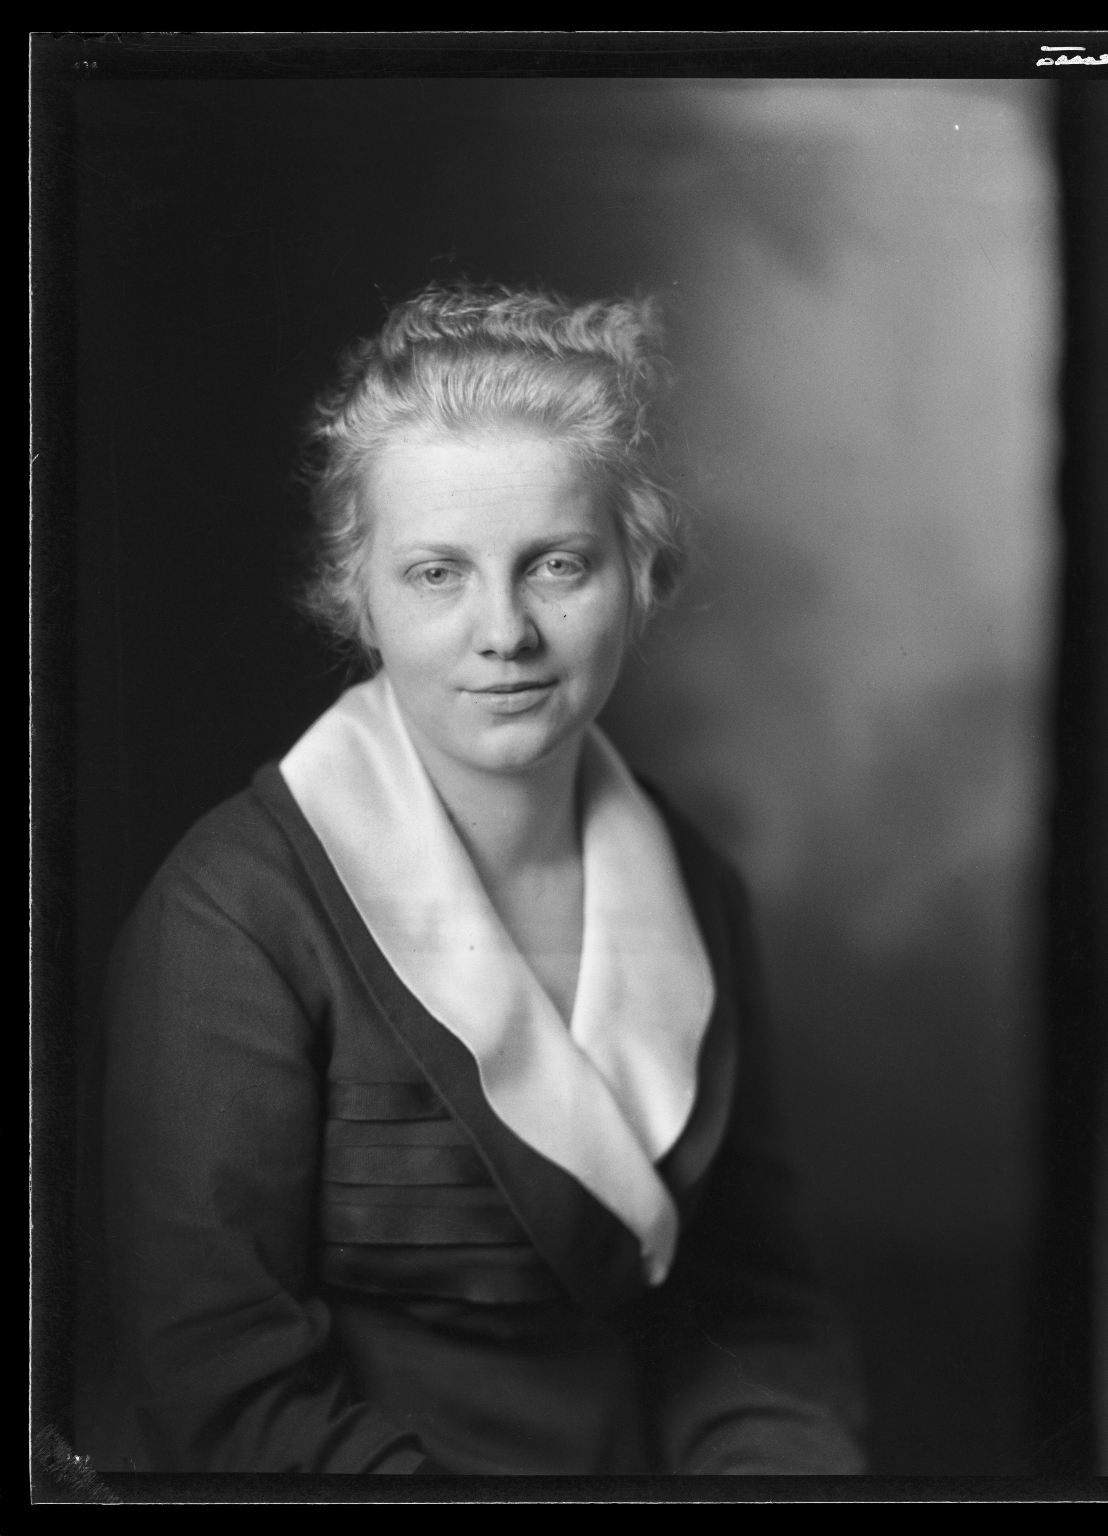 Portraits of Mary Terwilliger